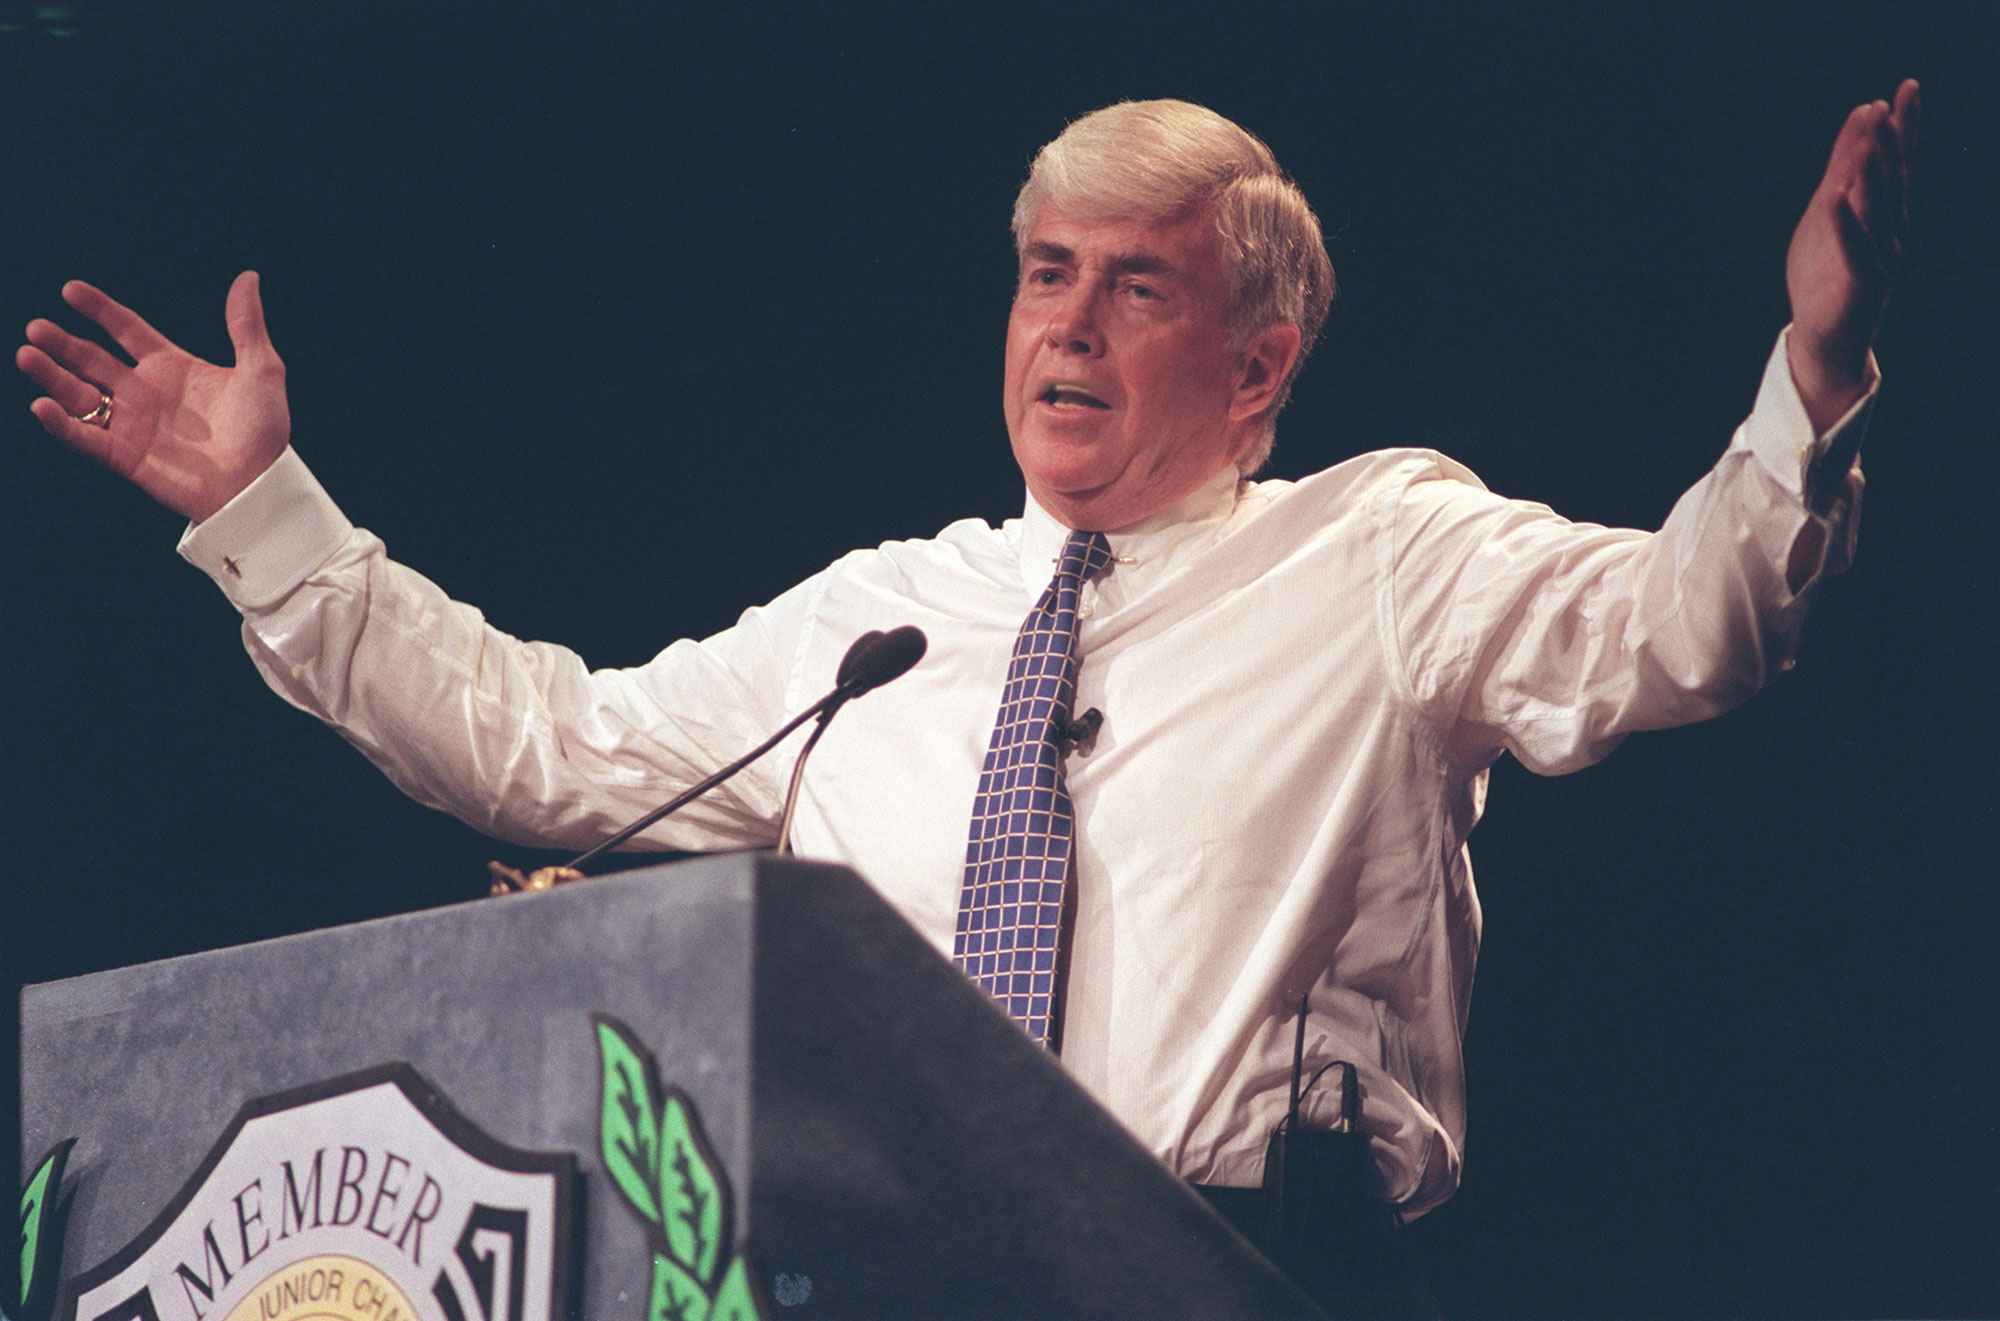 Tax plans of President Trump and former Congressmanj Jack Kemp, above, have many differences. One is that Kemp's revolutionary tax plan became law. Trump's isn't going anywhere. (News file photo)